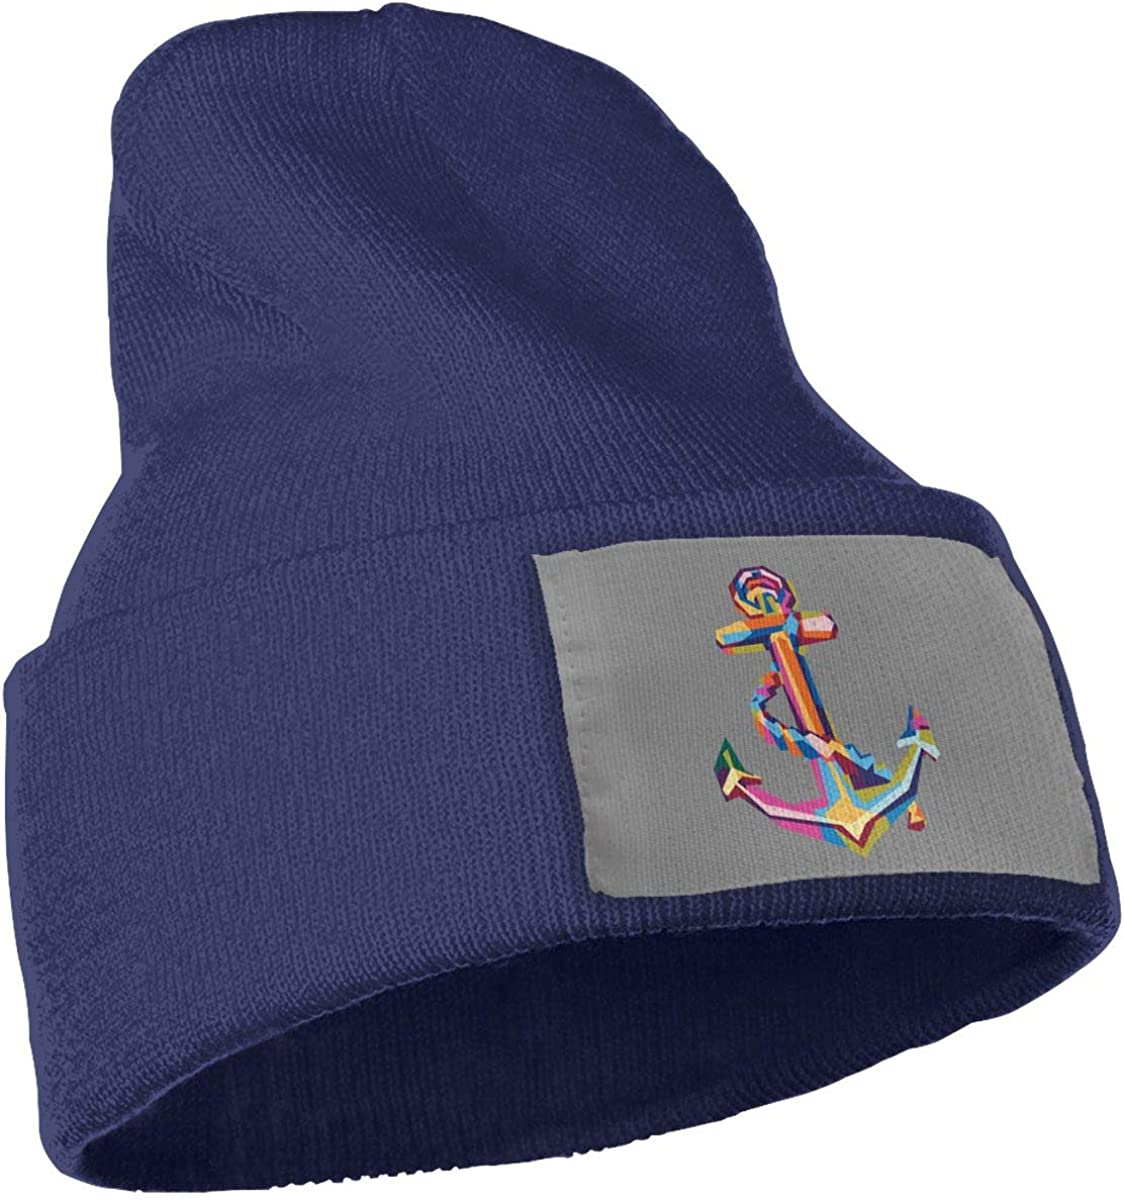 Colorful Anchor Wool Cap Skull Cap Unisex Winter Navy